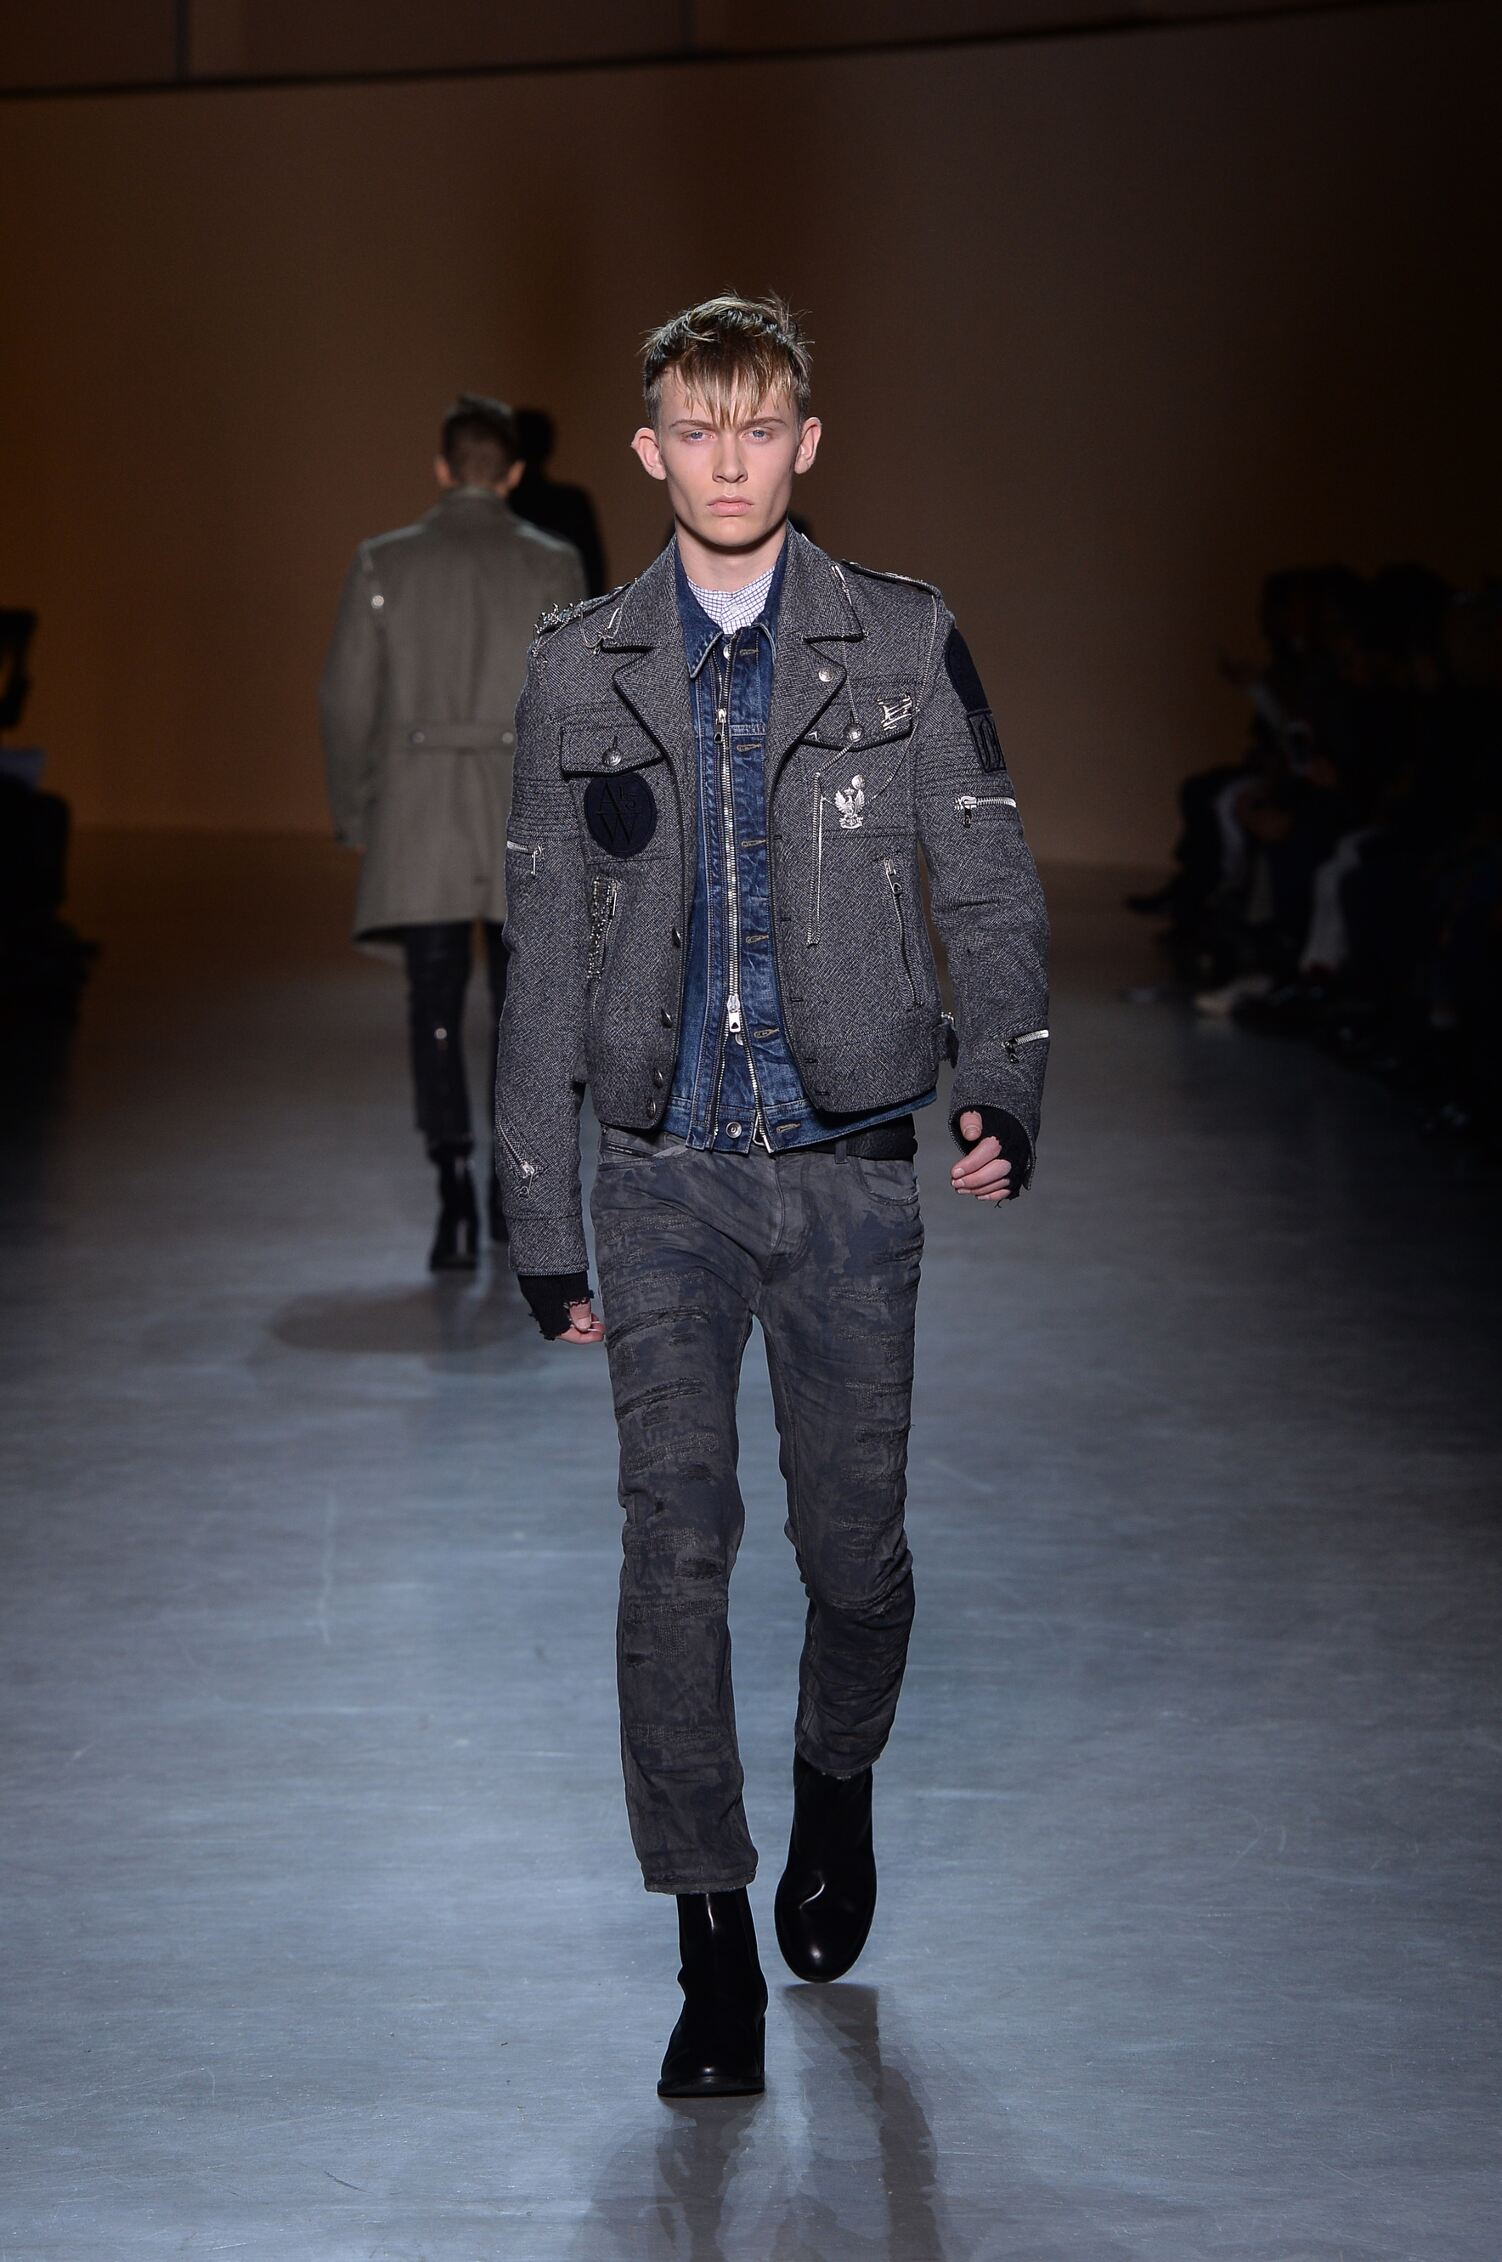 Diesel Black Gold Fall Winter 2015 16 Men S Collection The Skinny Beep